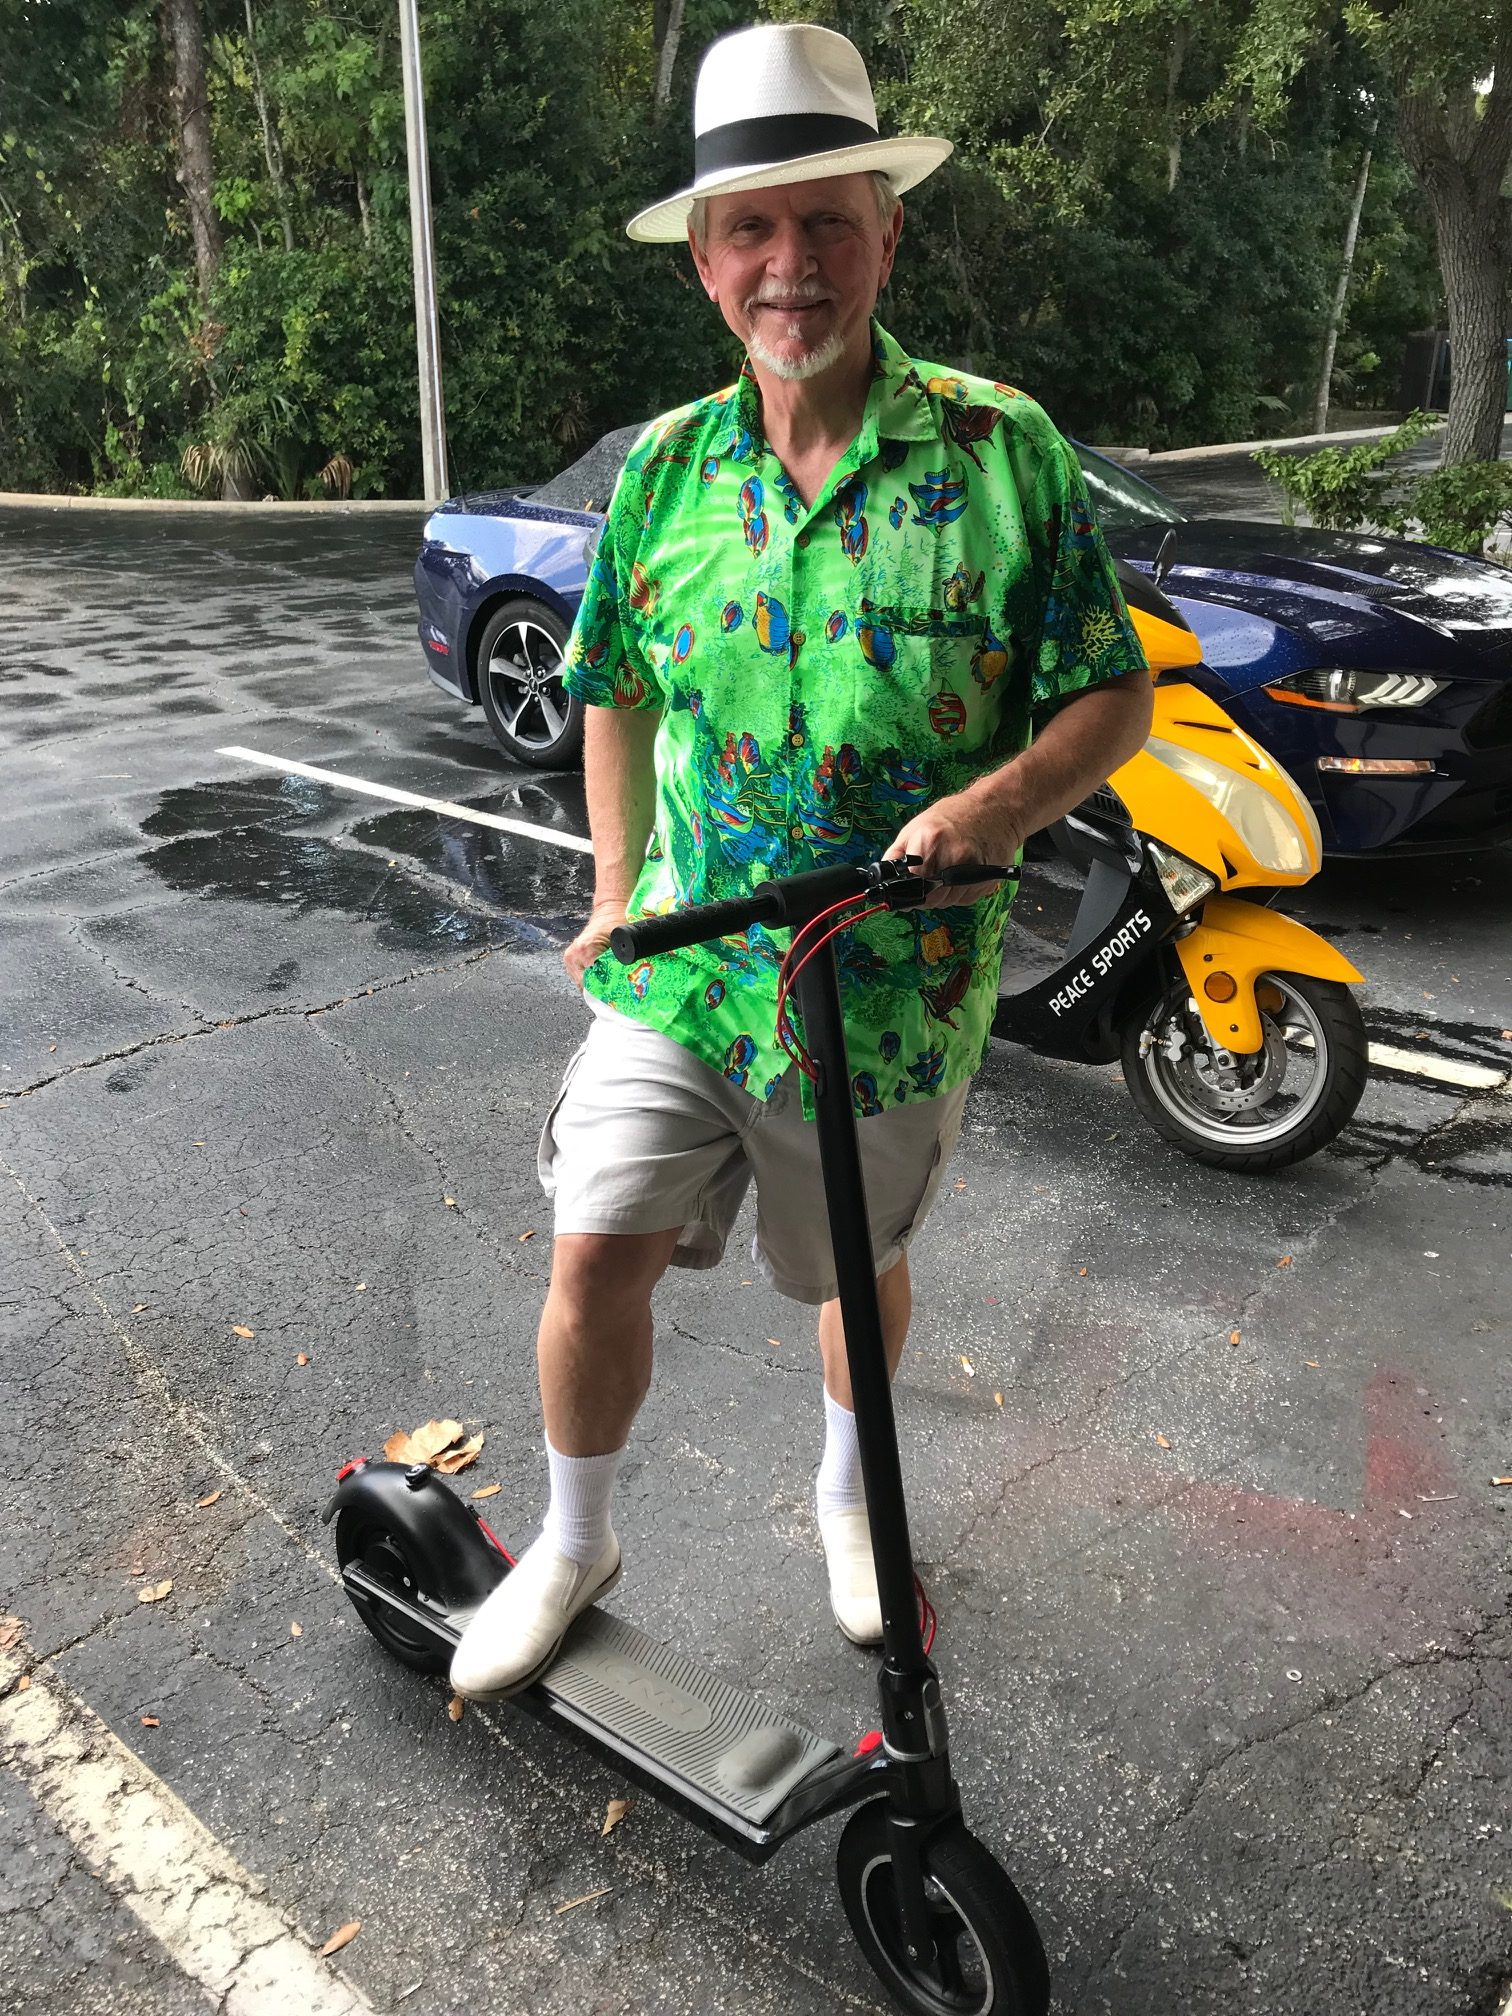 Dad e-scooter pose